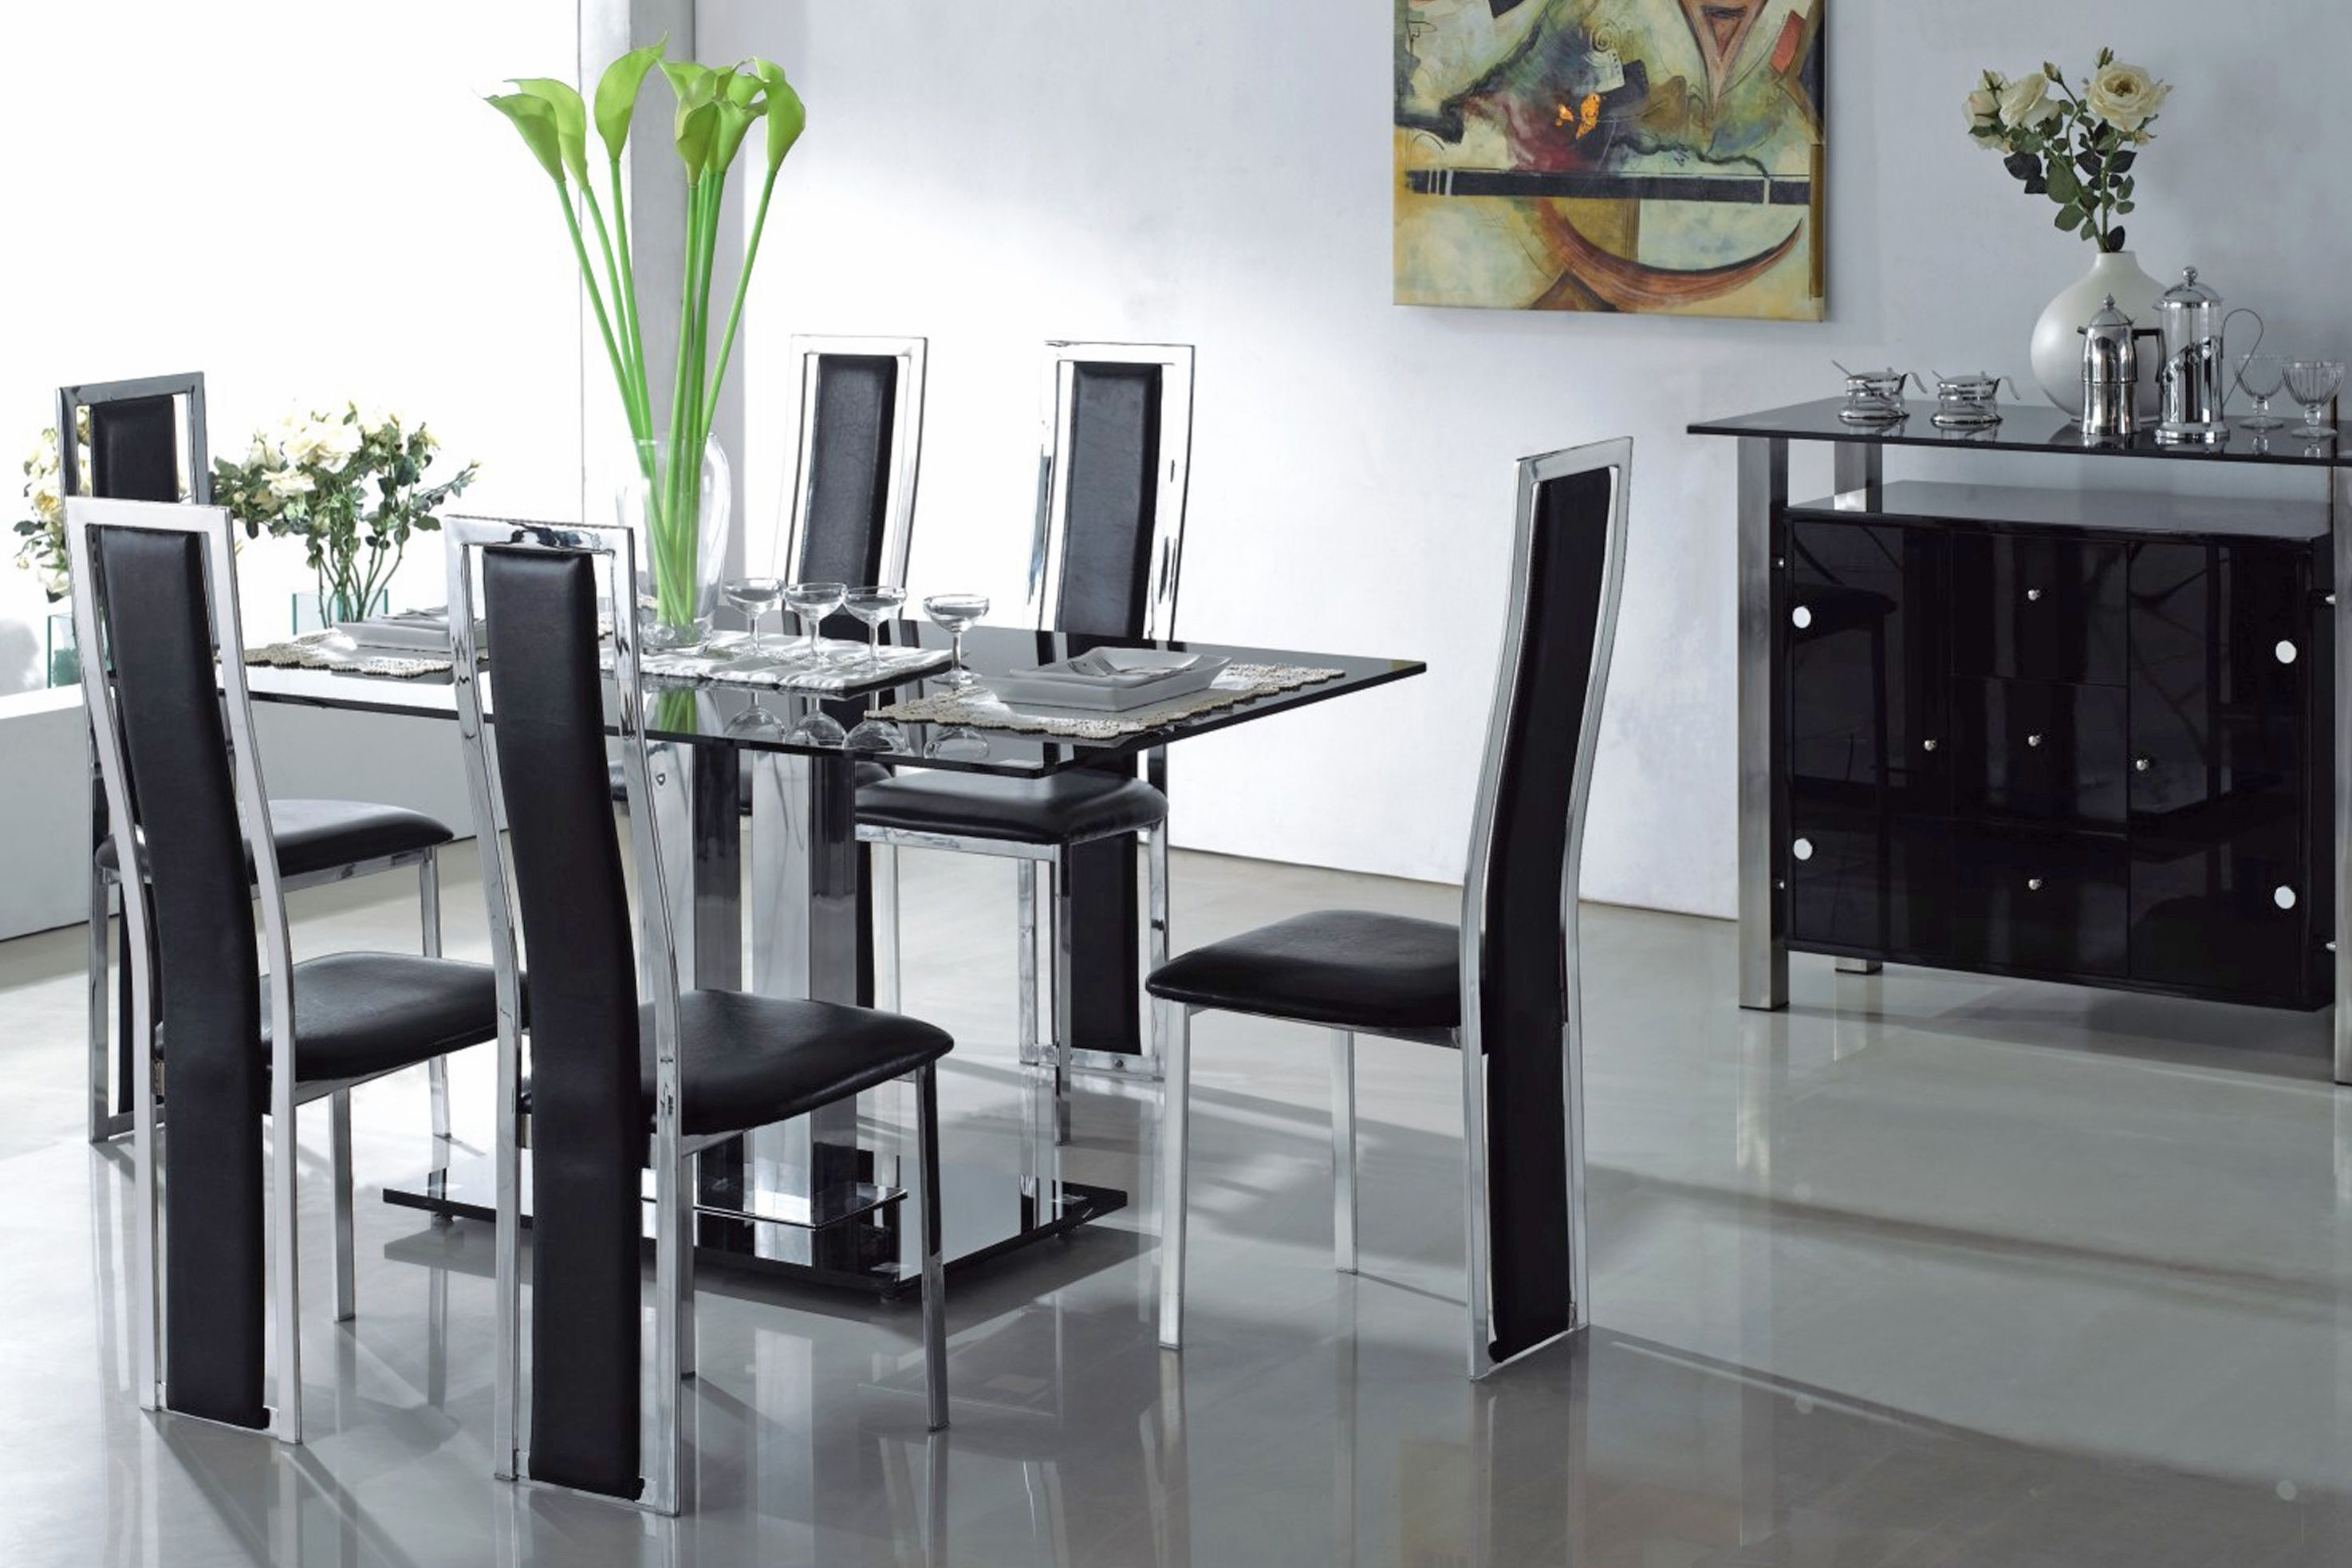 black glass kitchen table and chairs interior modern on kitchen interior table id=41207